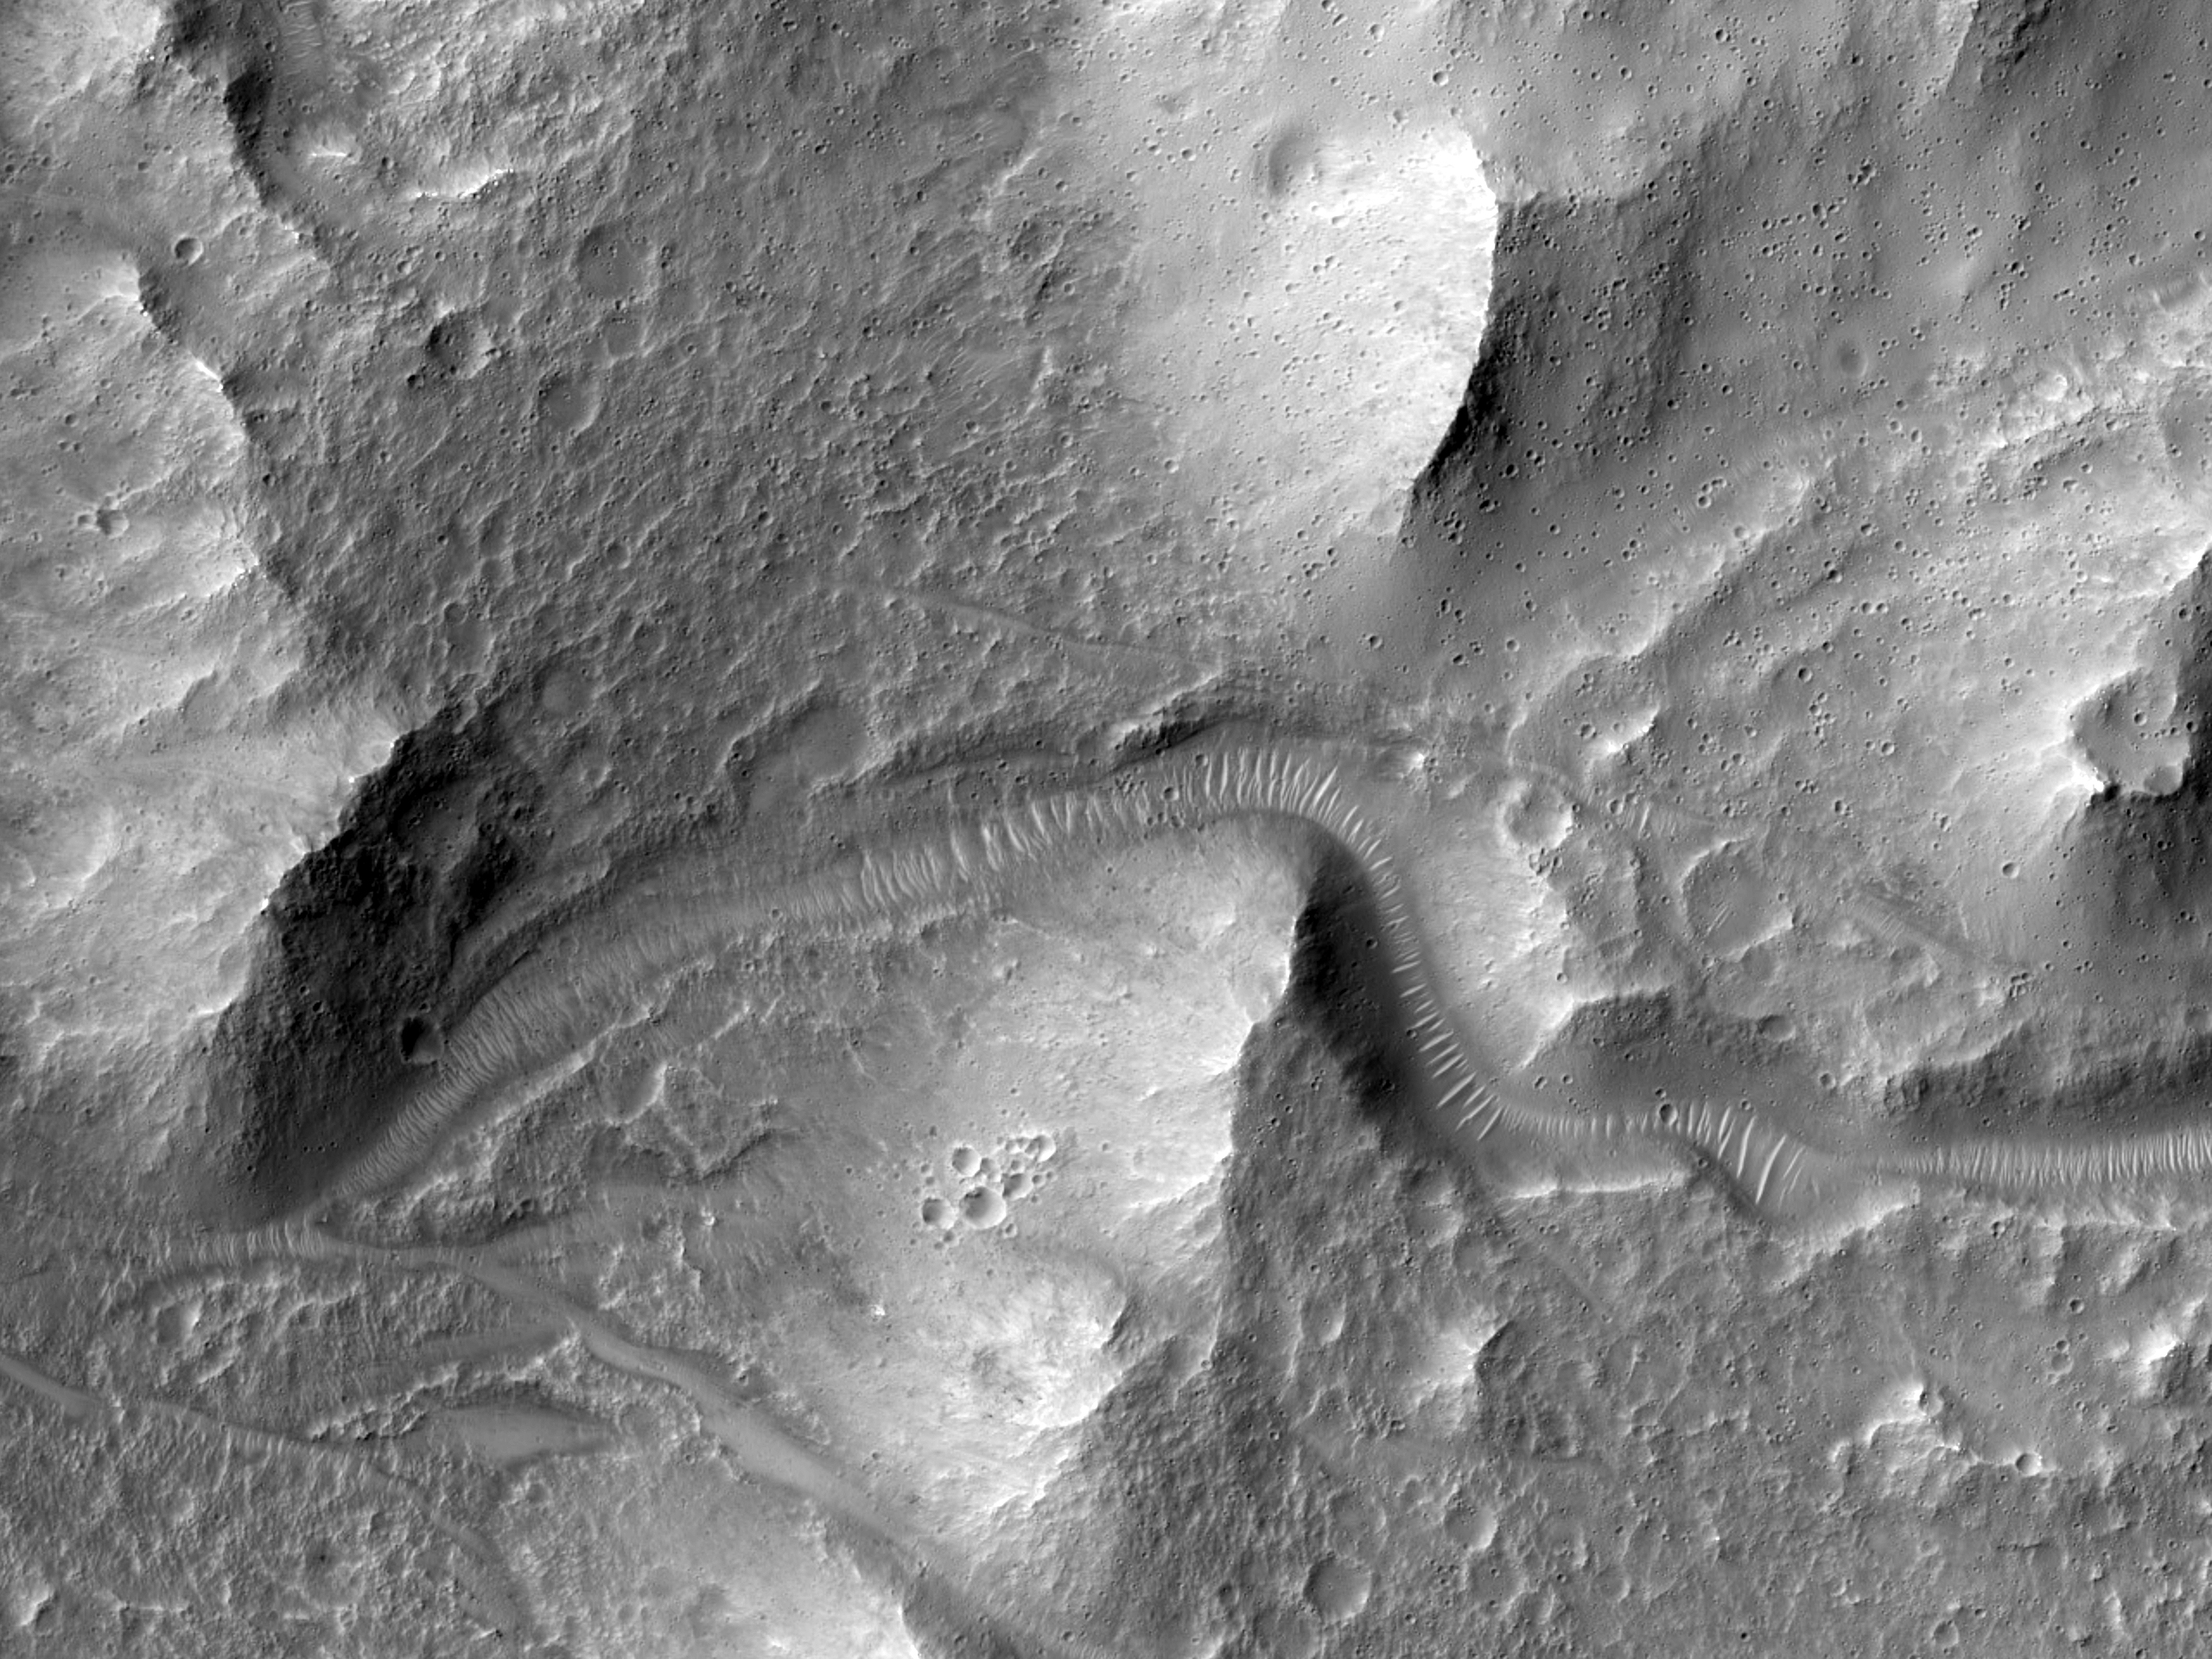 A Channel in the Southern Mid-Latitudes